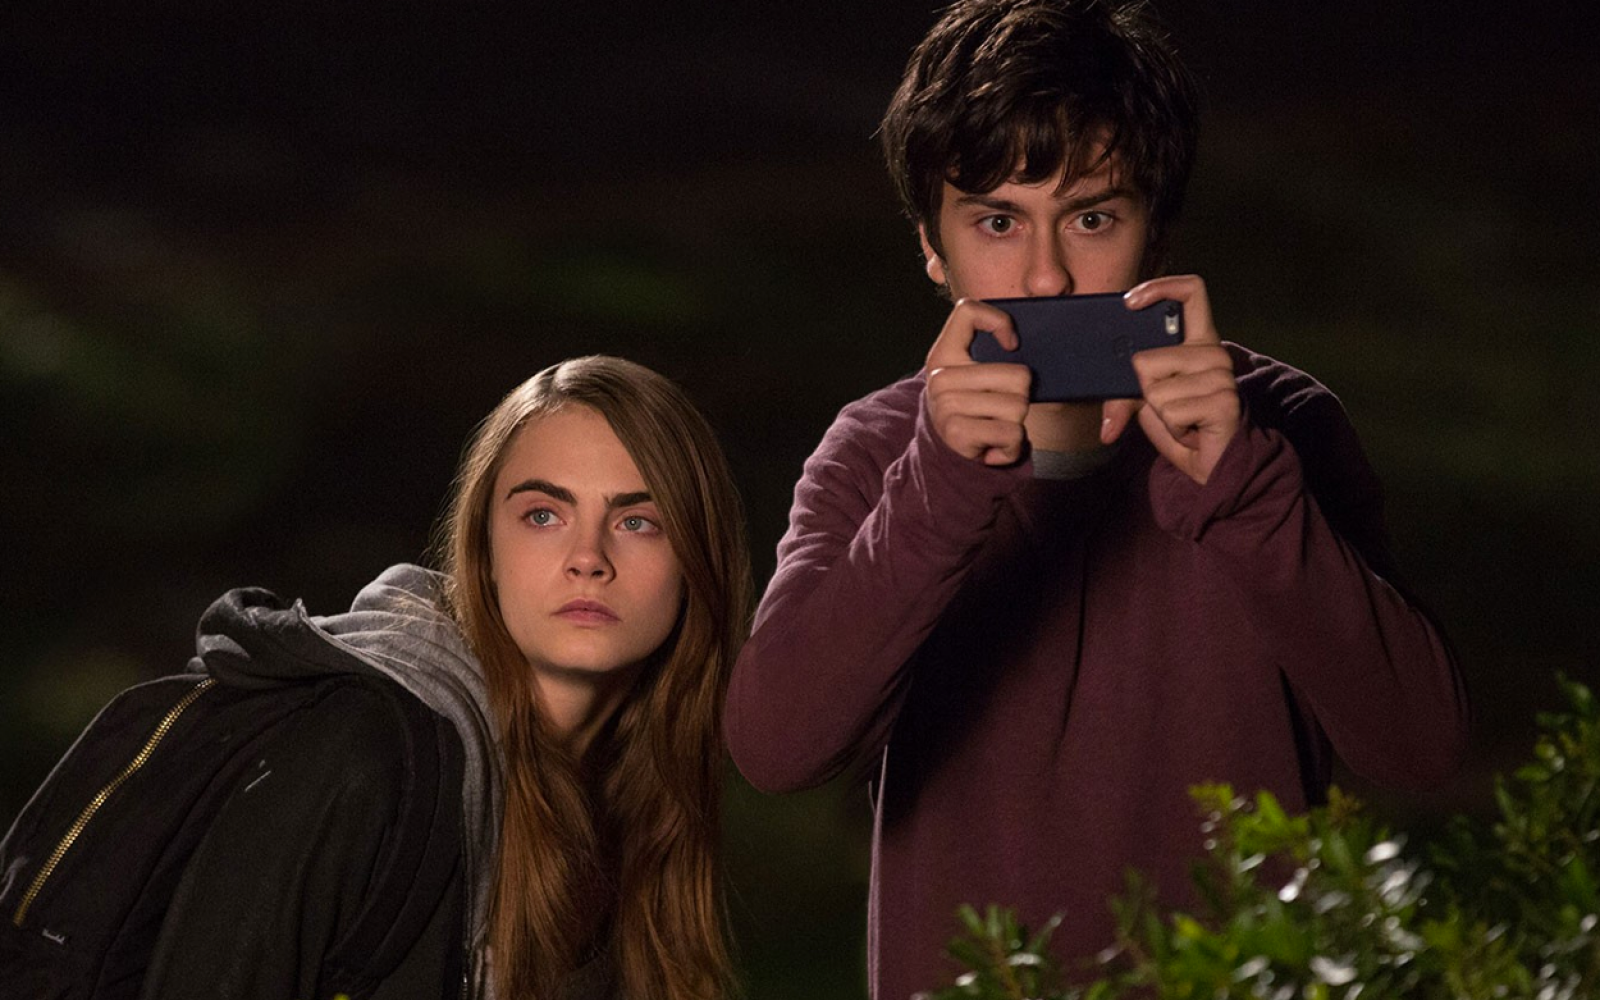 24 'Paper Towns' Quotes To Remind You That Love Is An Illusion But Friendship Is The Real Deal